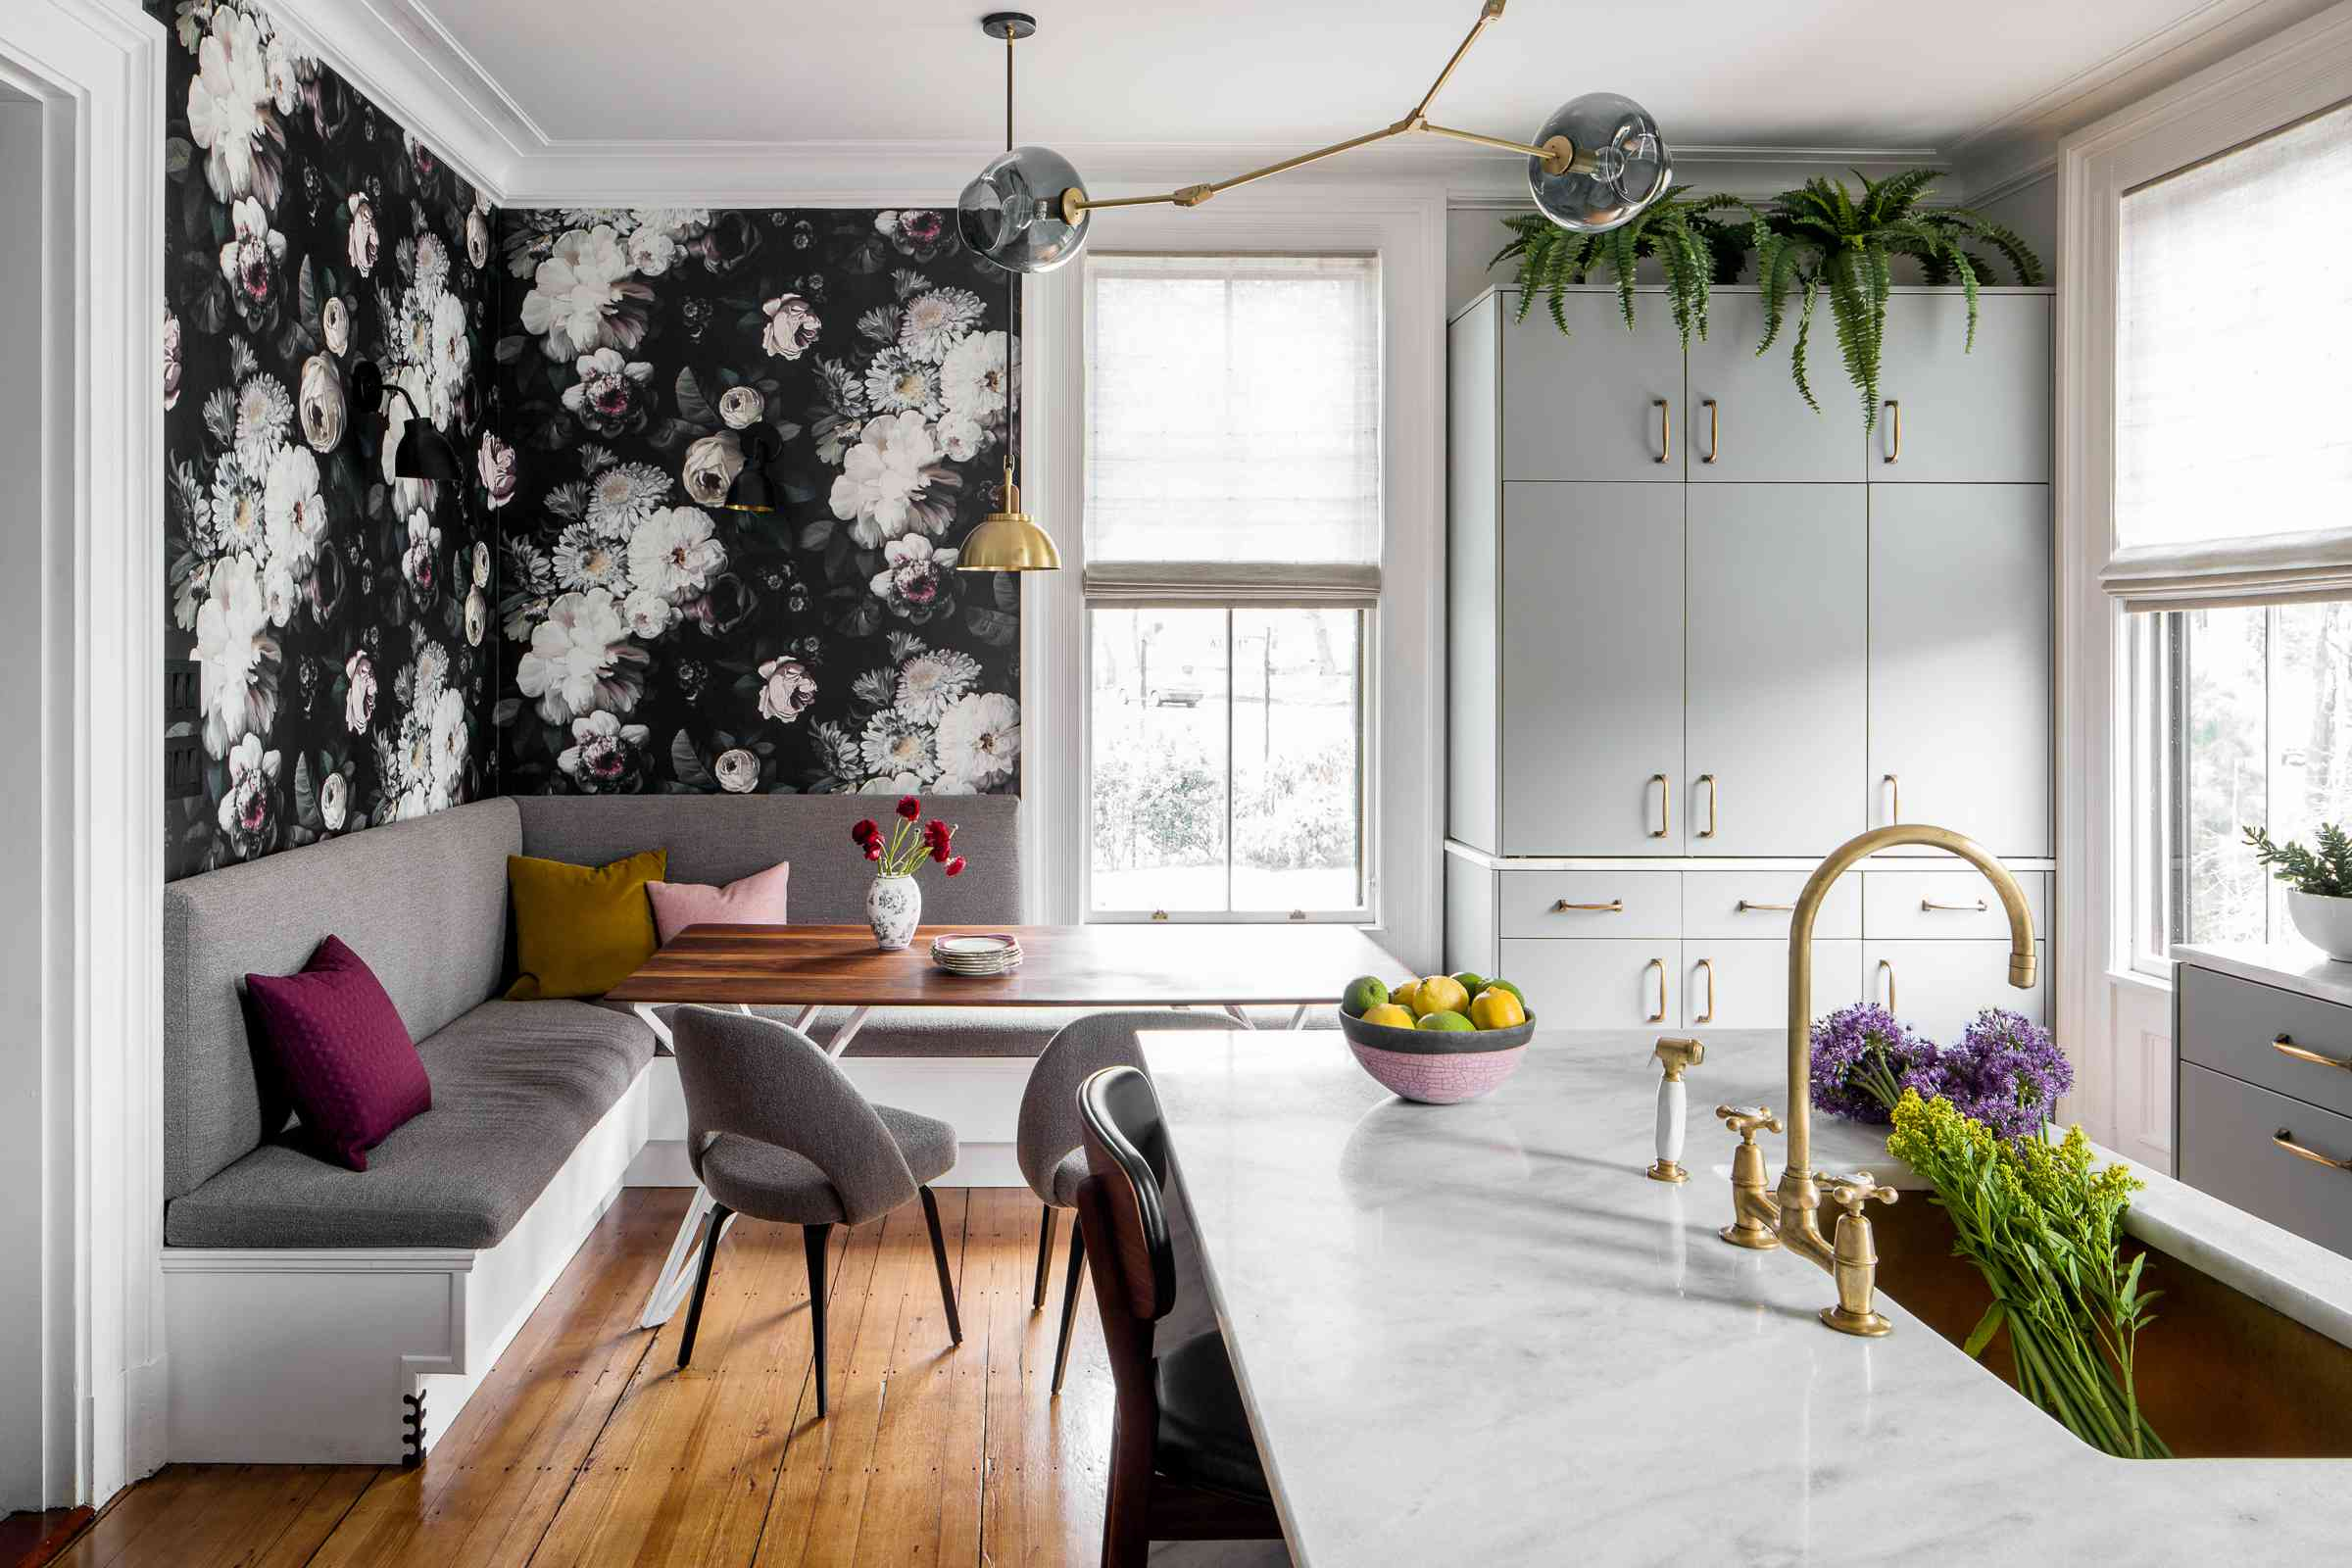 Dark floral wallpaper in a kitchen.